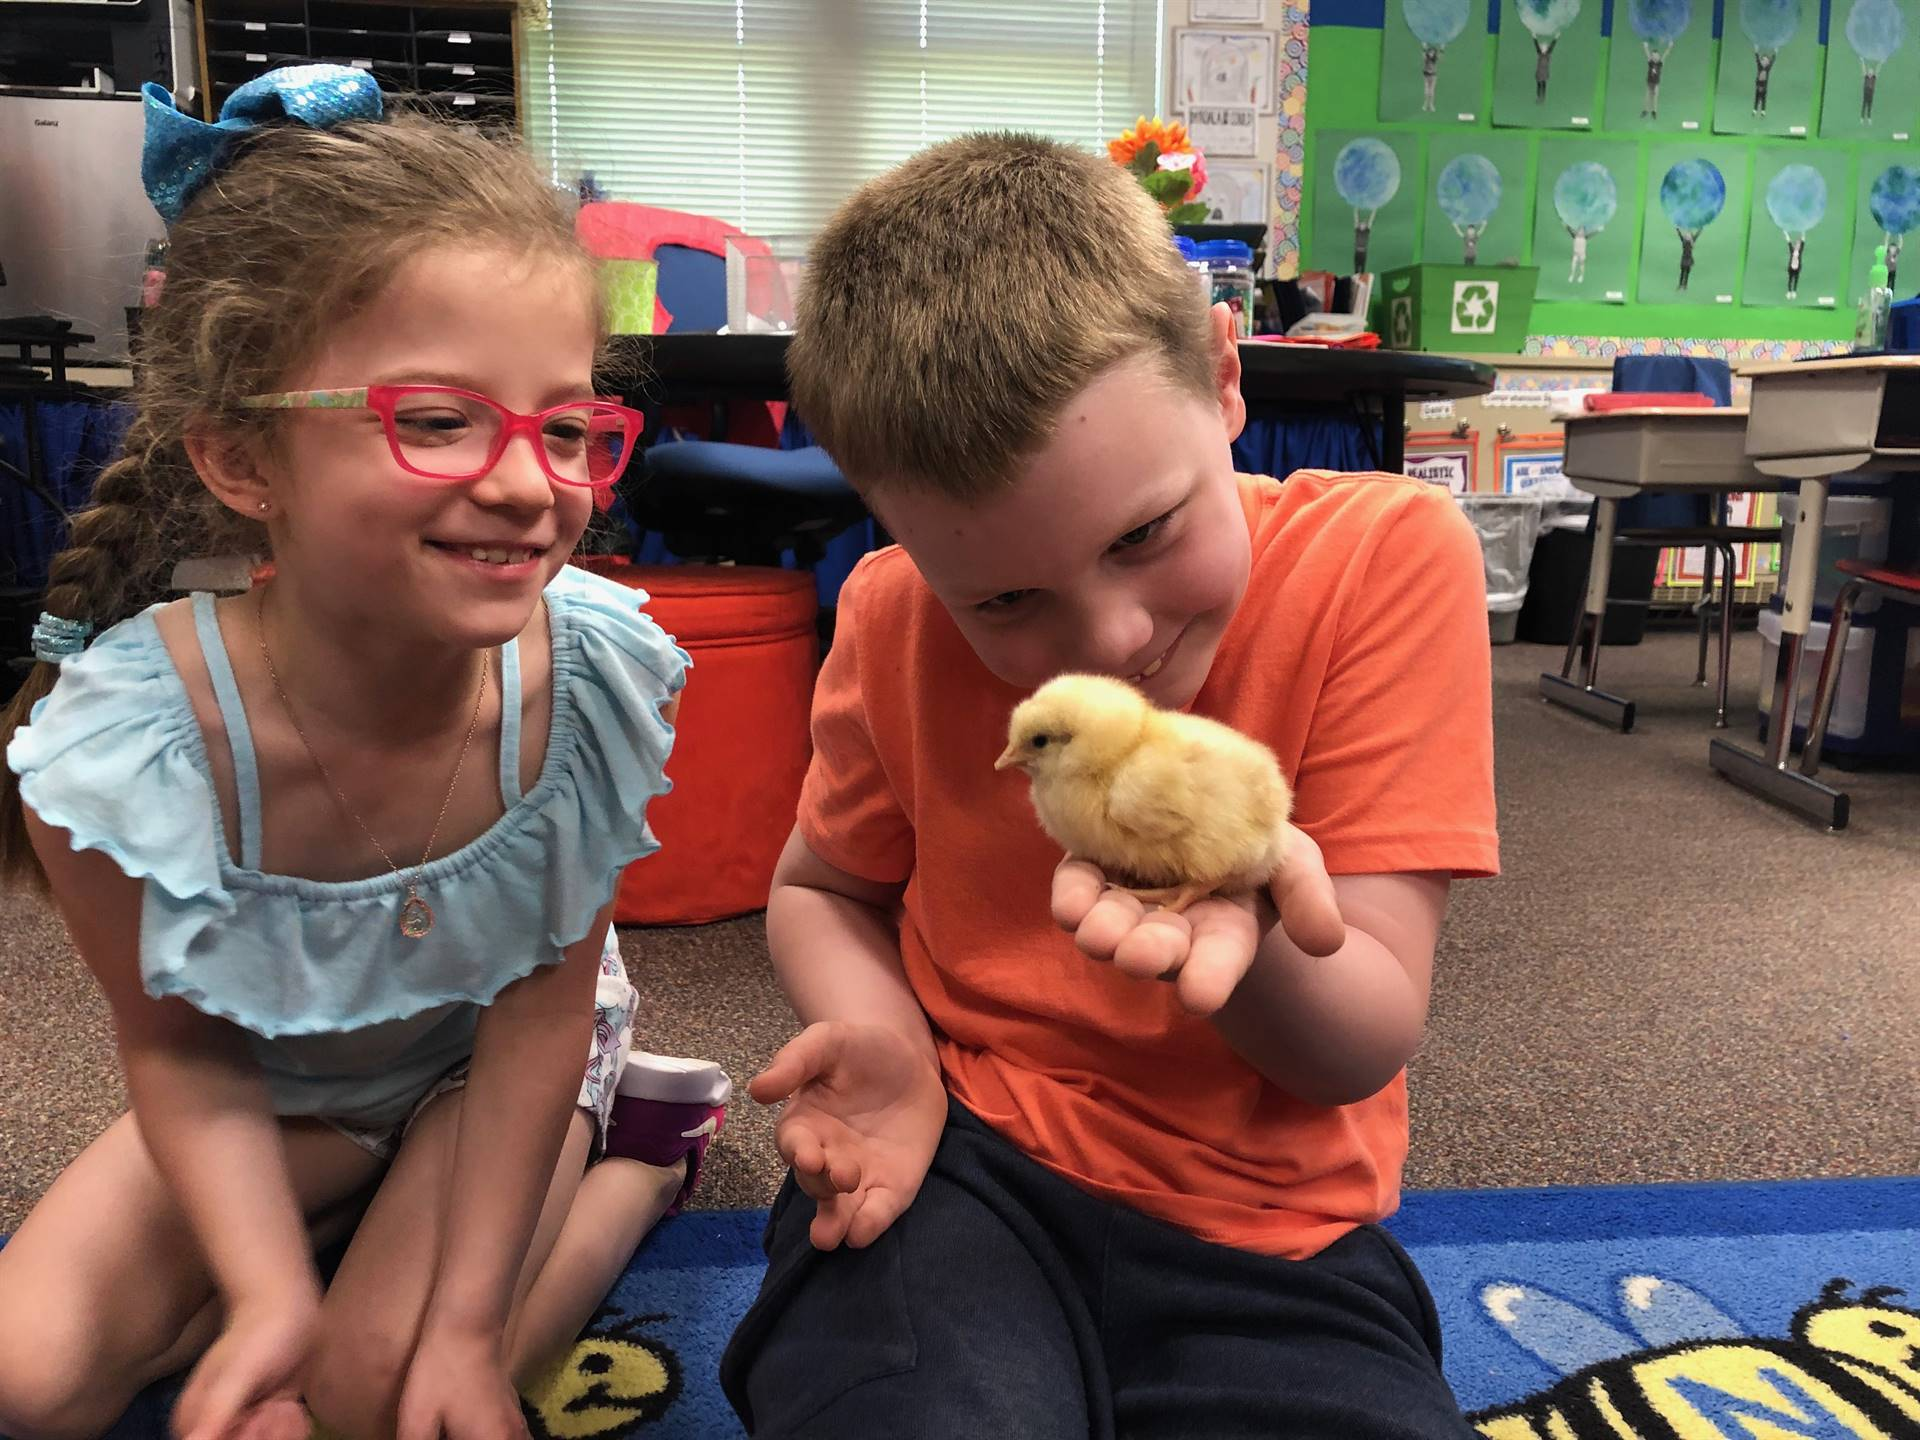 Student holding a chick while another student looks on